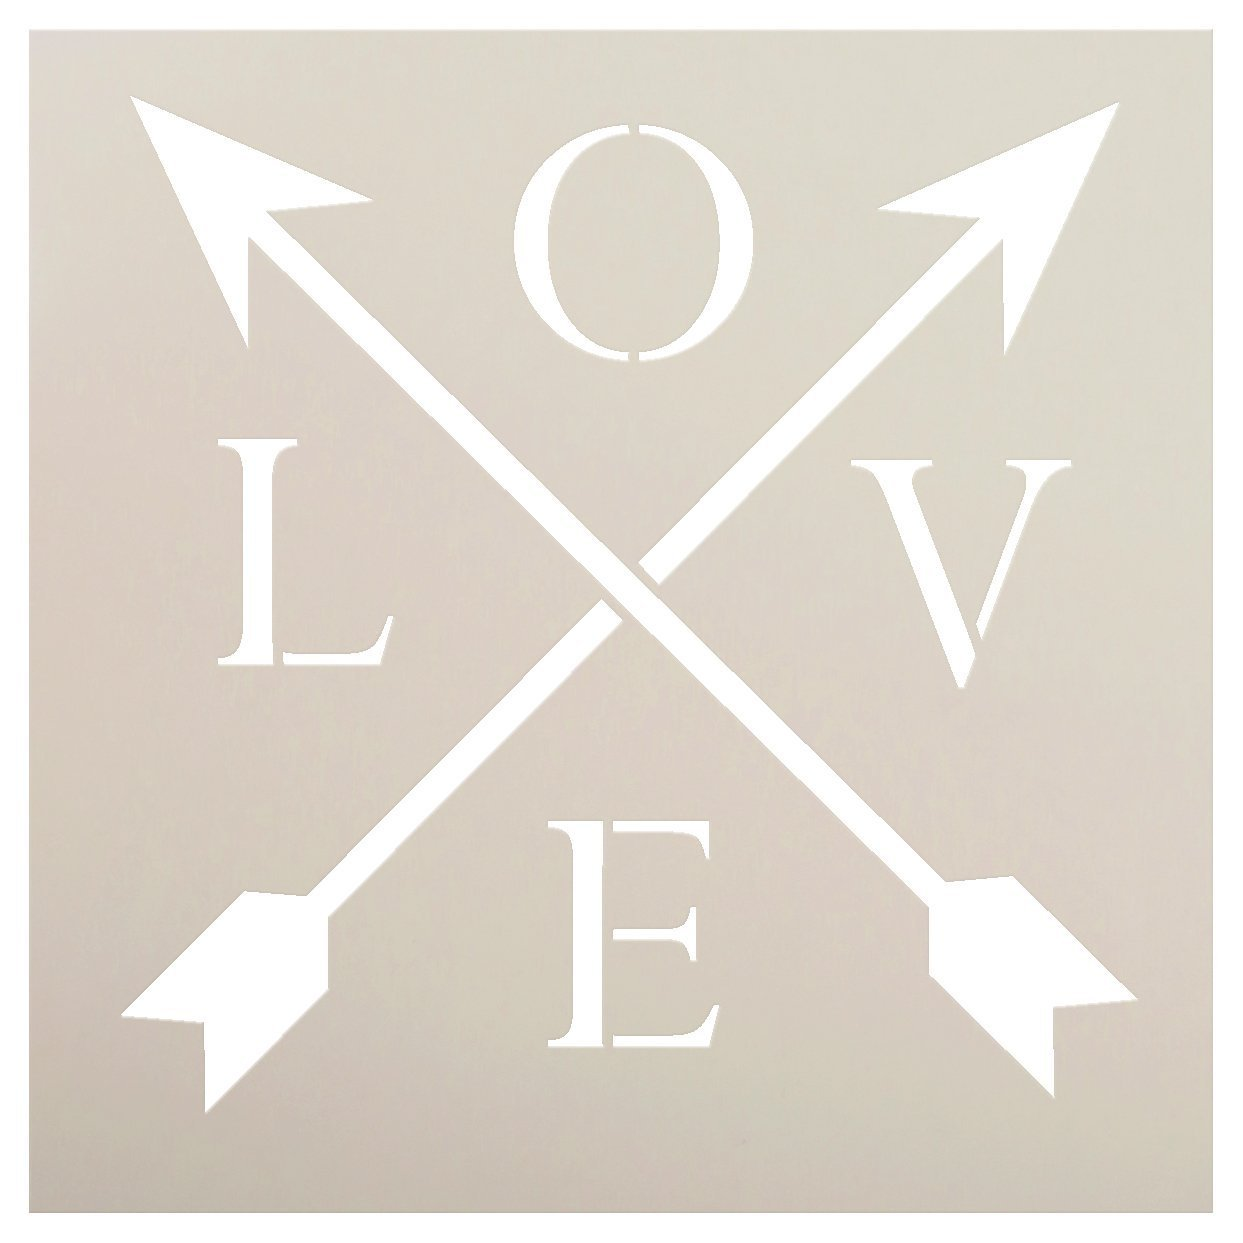 "Love with Crossbar Arrows Stencil by StudioR12 | Reusable Mylar Template | Use for Painting Rustic Signs on Pallets, Wood and Pillows | DIY Home Decor - CHOOSE SIZE … (9"" x 9"")"